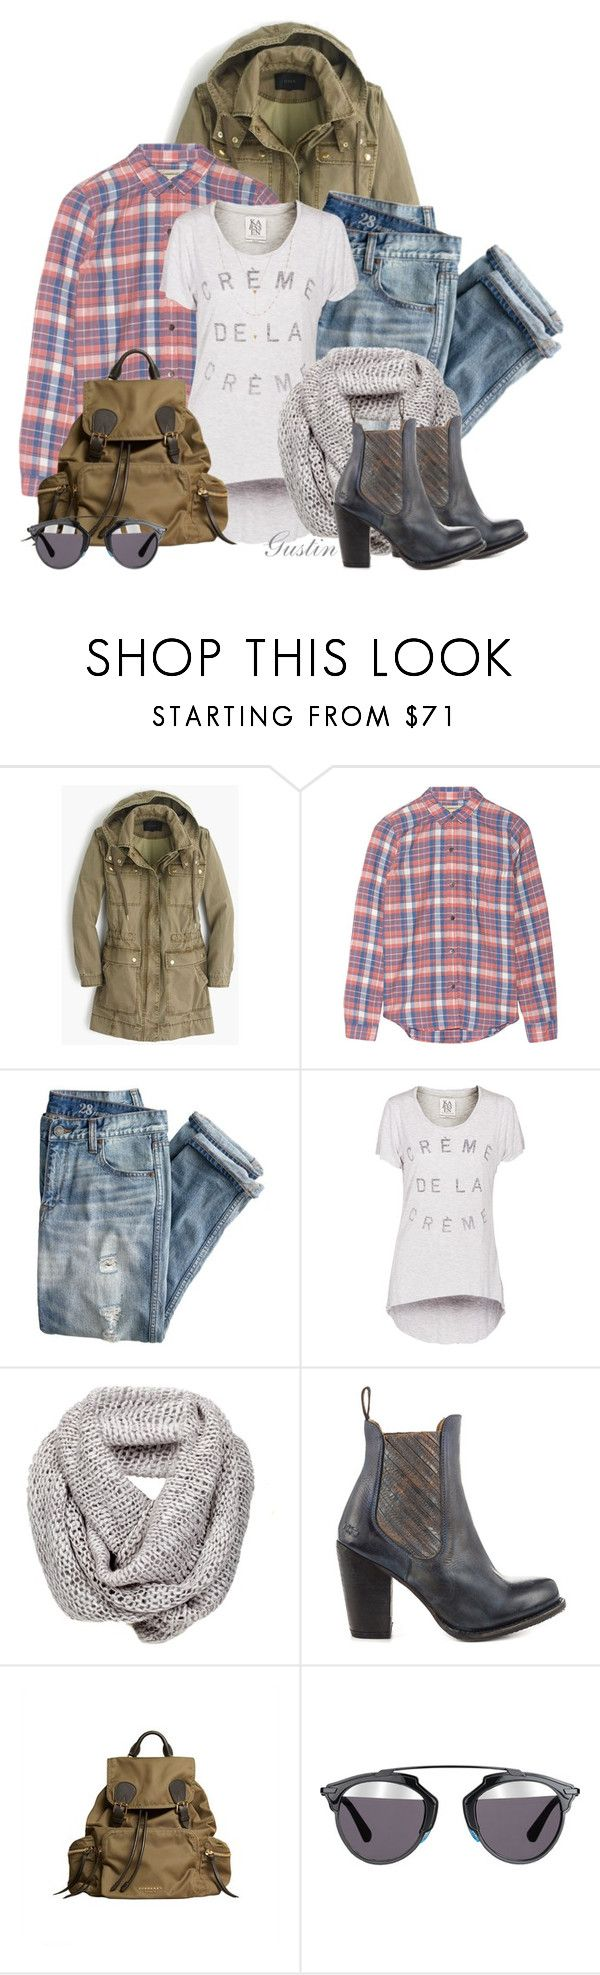 """""""fall"""" by stacy-gustin ❤ liked on Polyvore featuring J.Crew, Current/Elliott, Zoe Karssen, Bed